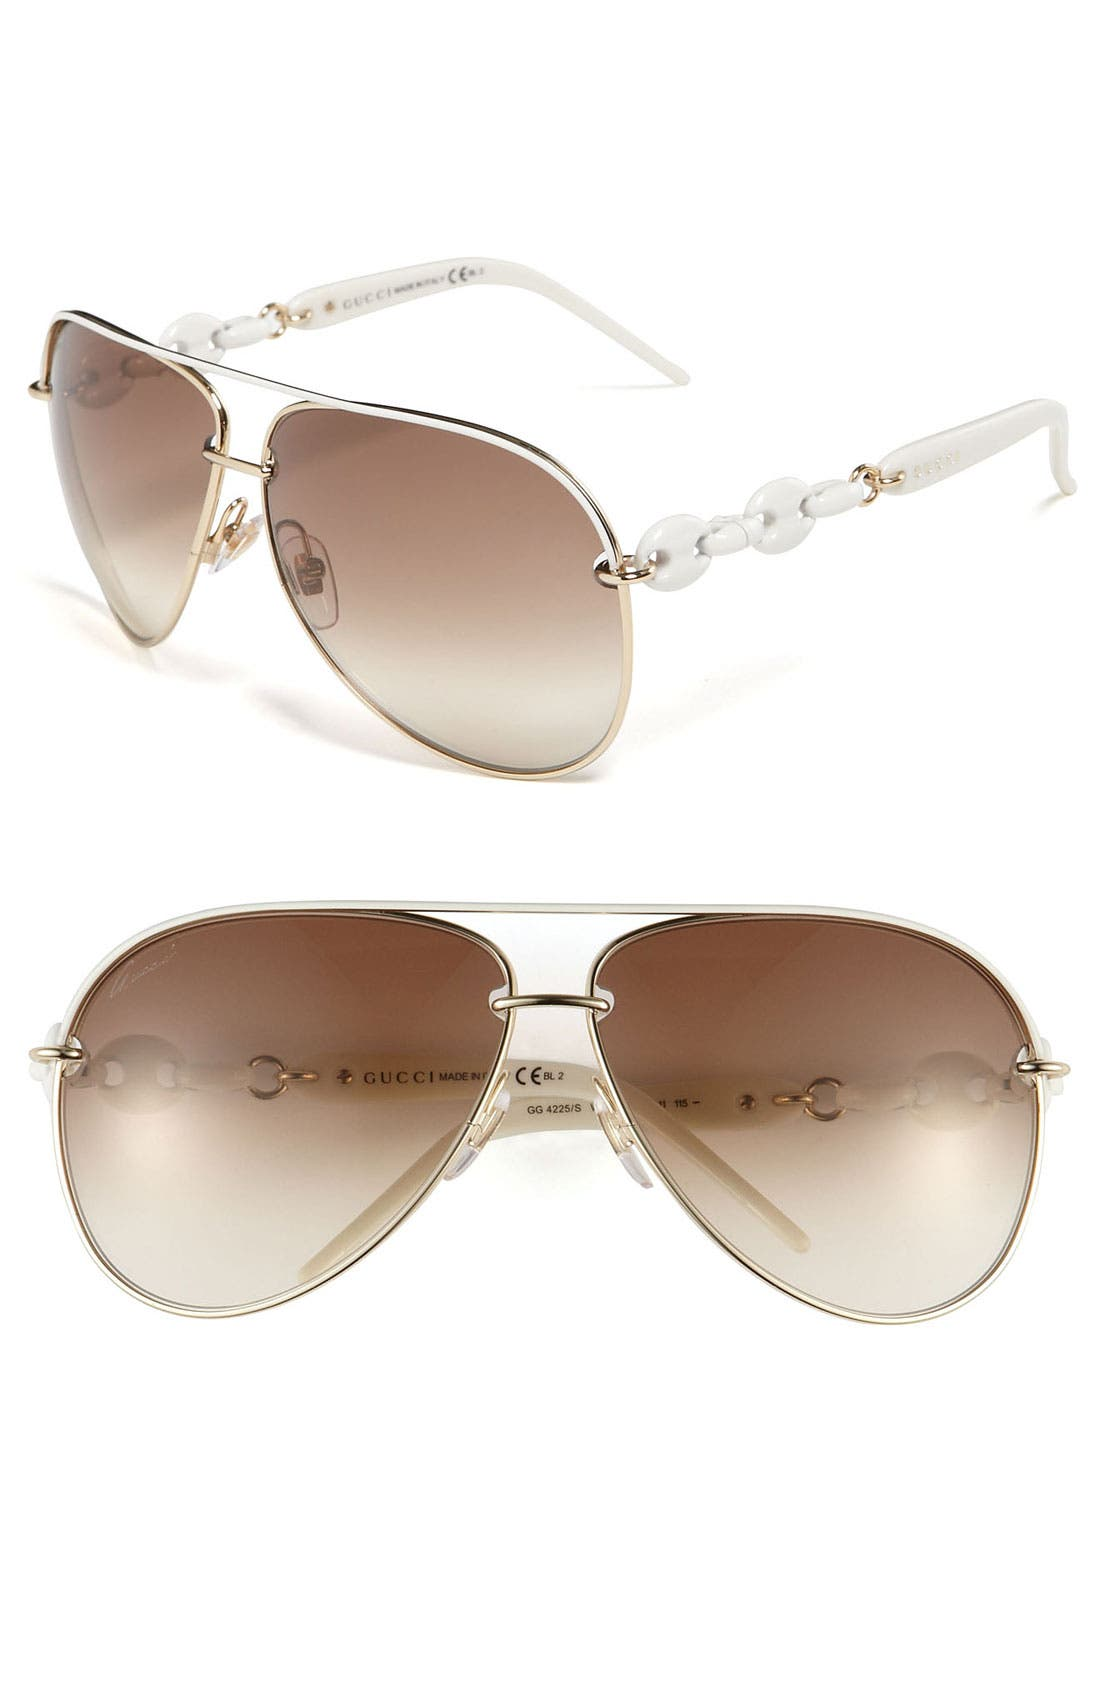 Alternate Image 1 Selected - Gucci 'Marina Chain' 63mm Aviator Sunglasses